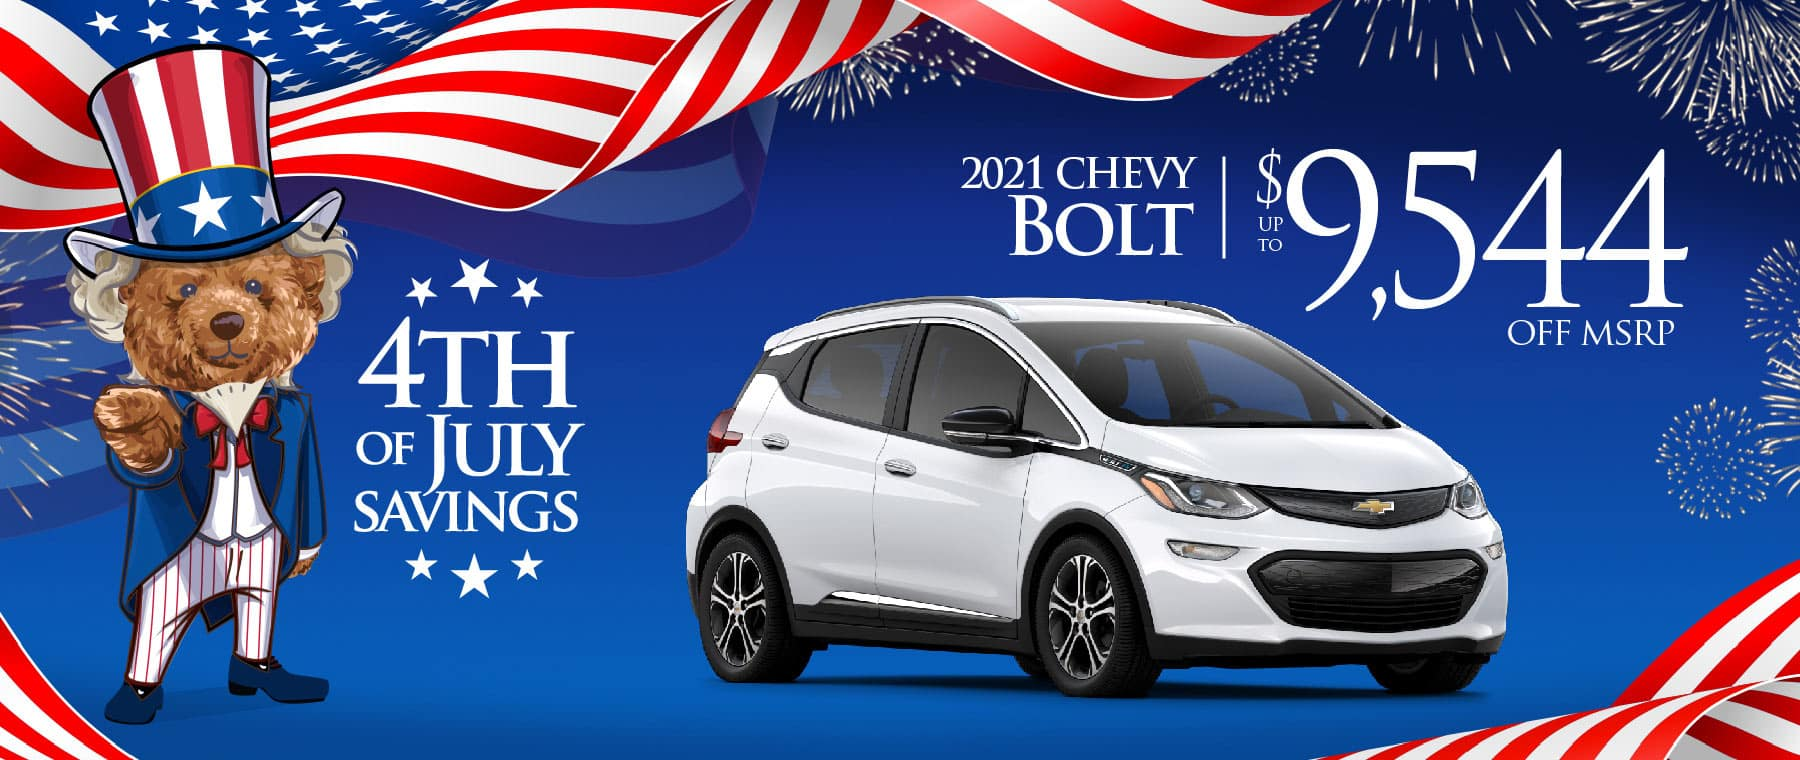 2020 Chevy Bolt - save up to $13,500